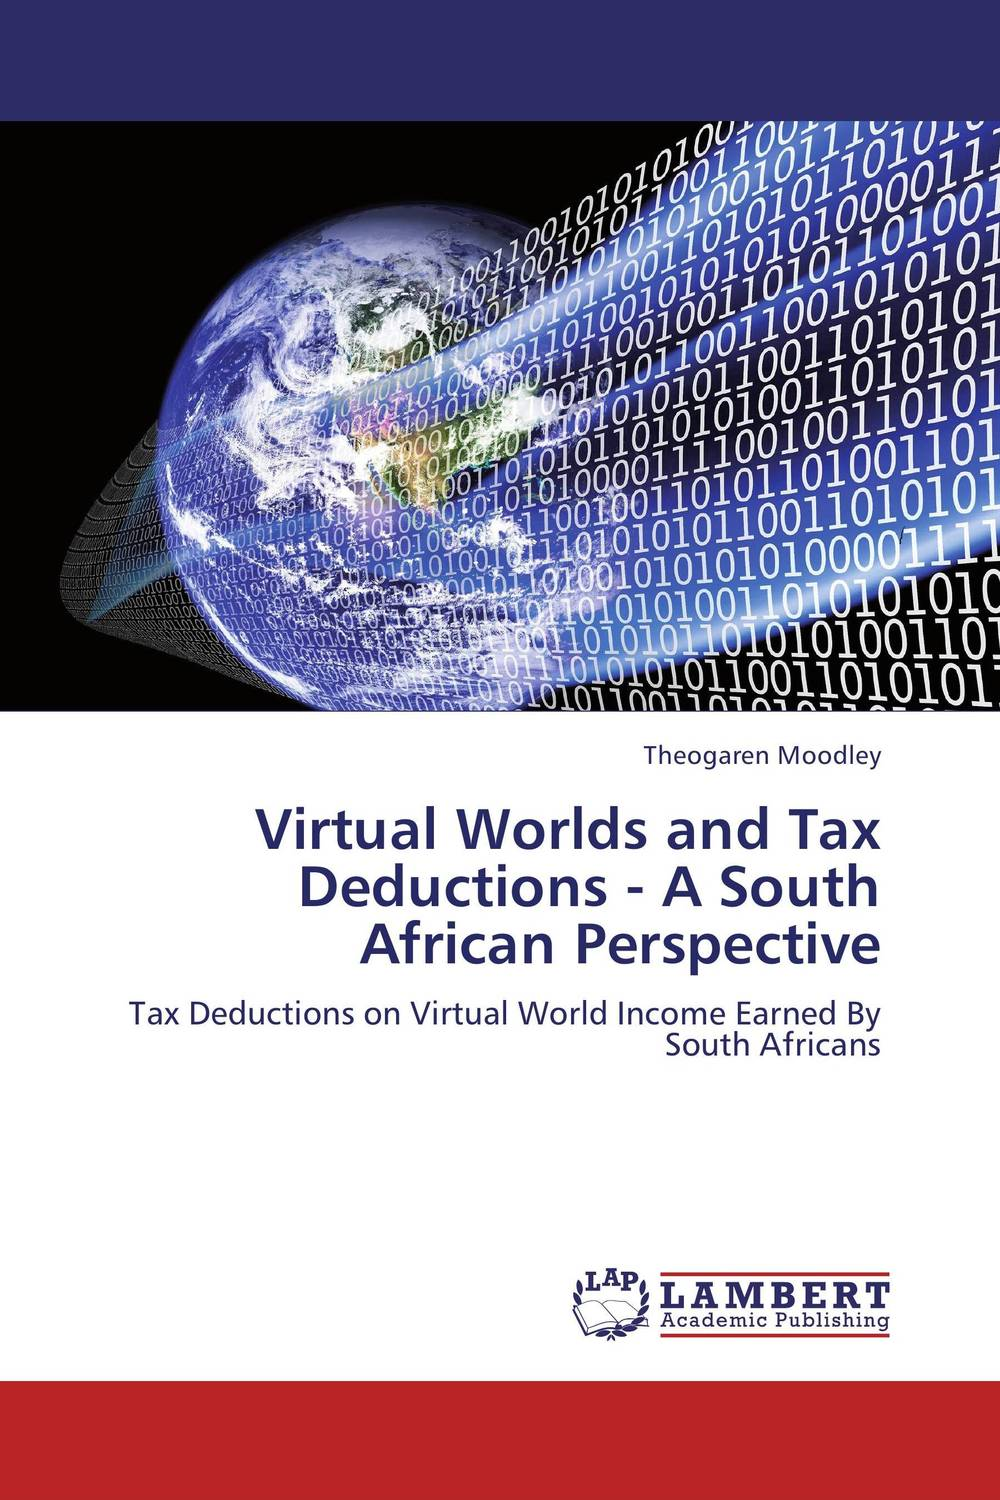 Virtual Worlds and Tax Deductions - A South African Perspective